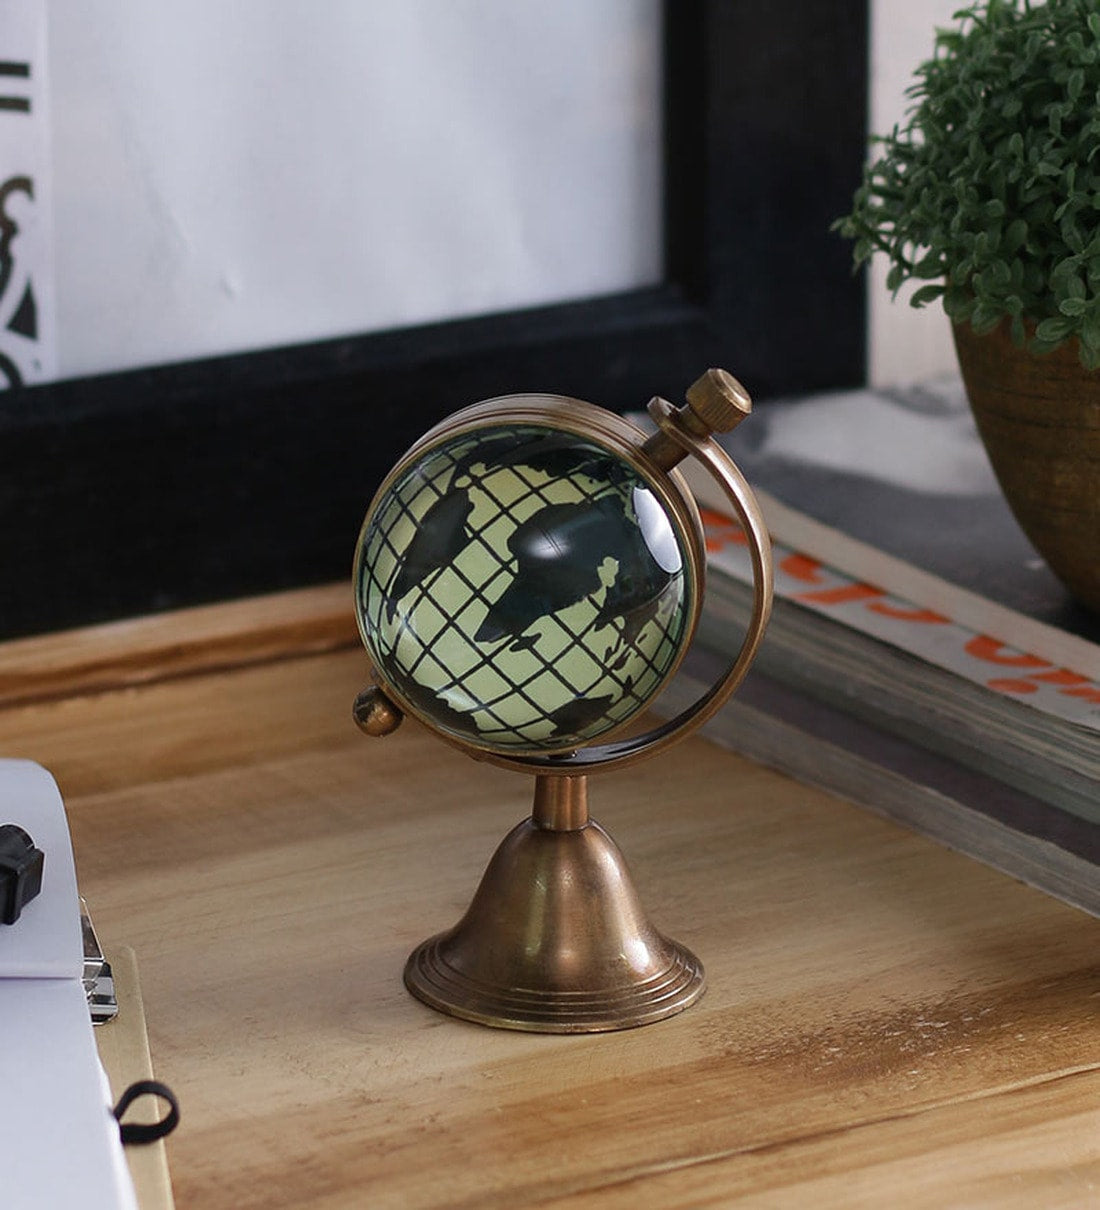 Brass Analog Table Clock for Office, Home Decor ( London Dial )